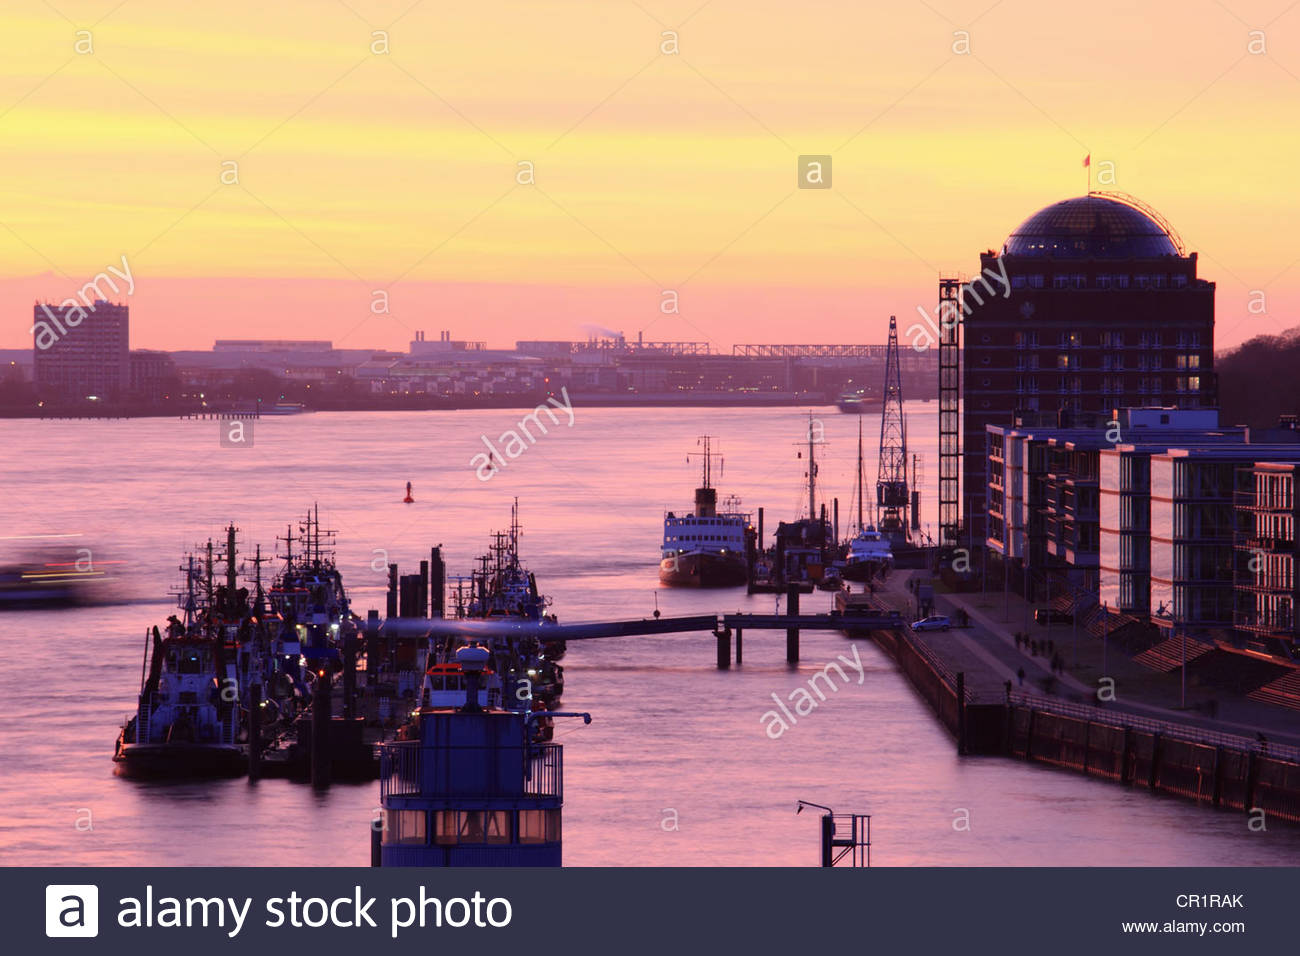 Aerial view of trawlers in urban pier Stock Photo